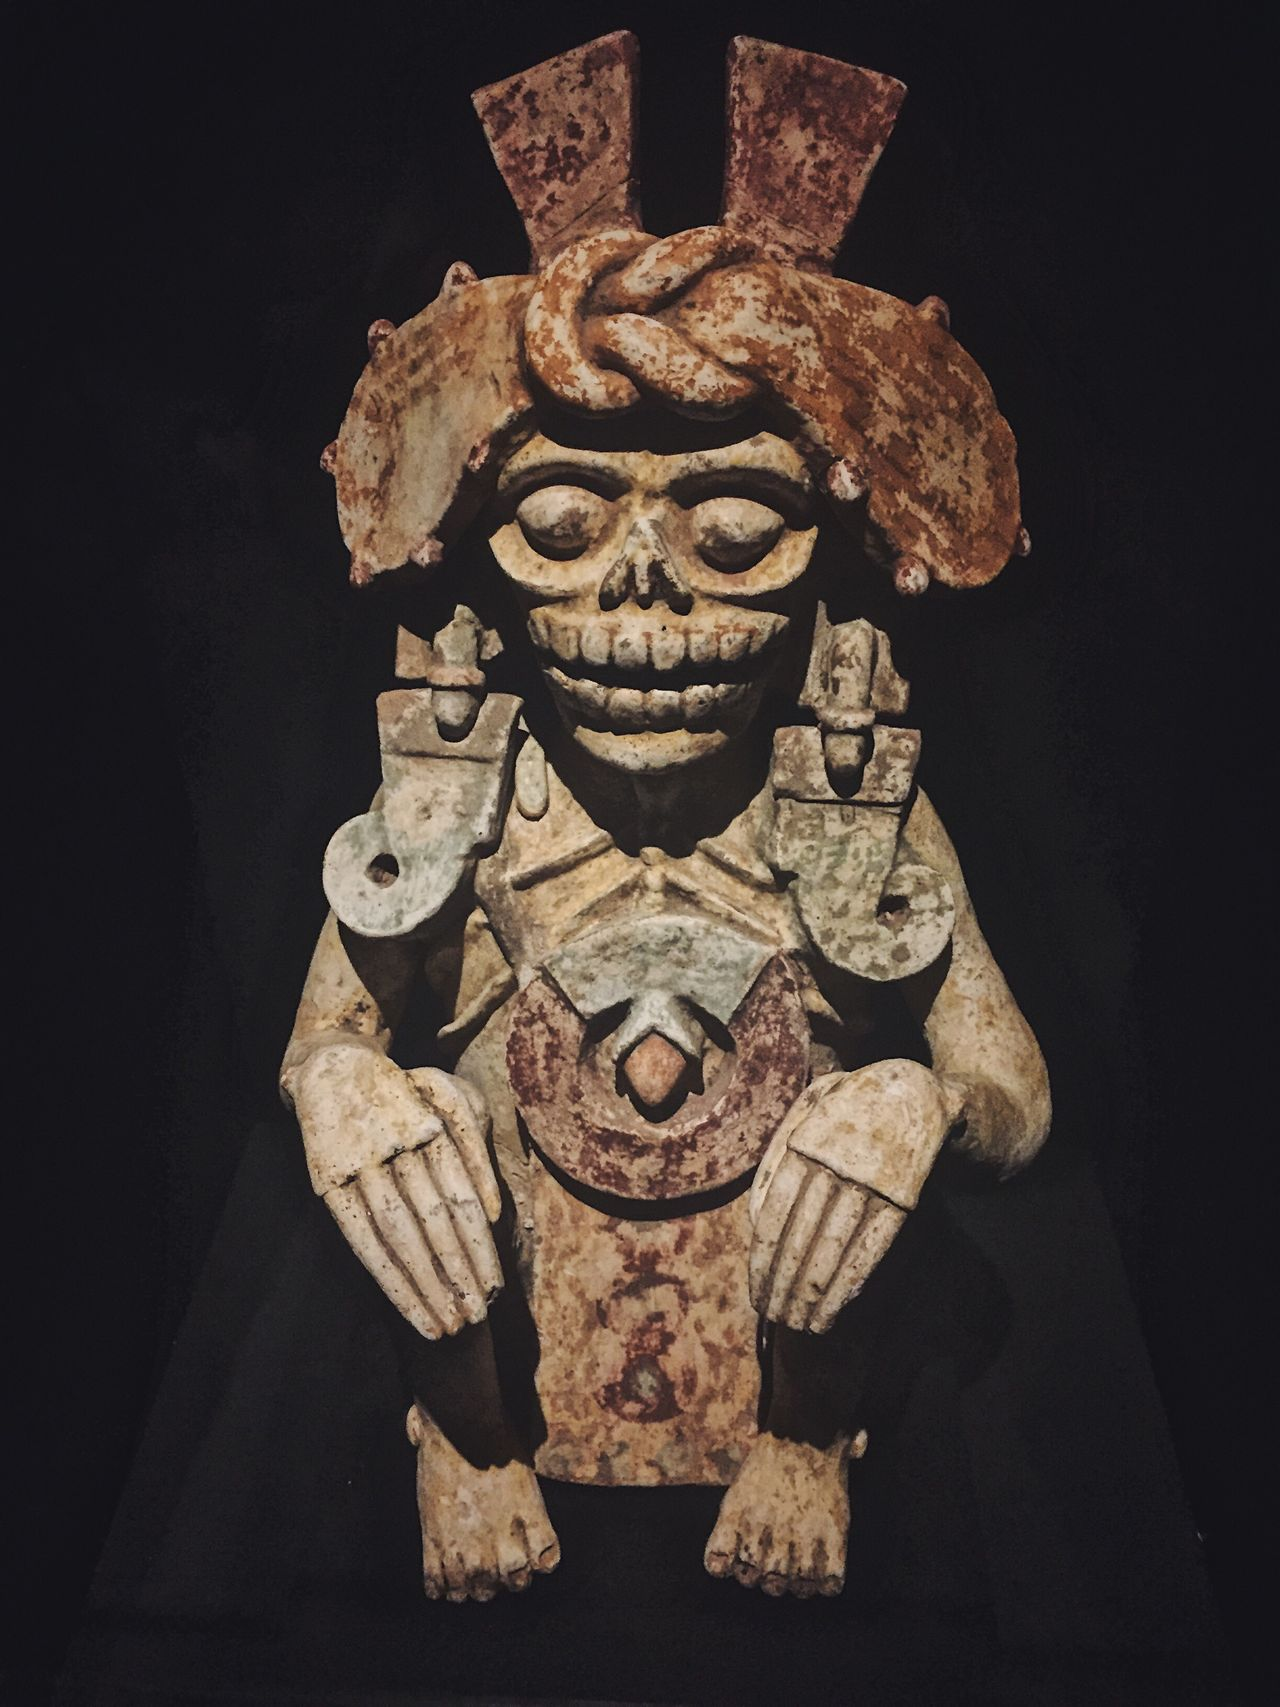 Skeletal relic Art And Craft No People Close-up Indoors  Black Background Day Mayanculture Eyeem Market EyeEmNewHere EyeEm Best Shots ScienceMuseum